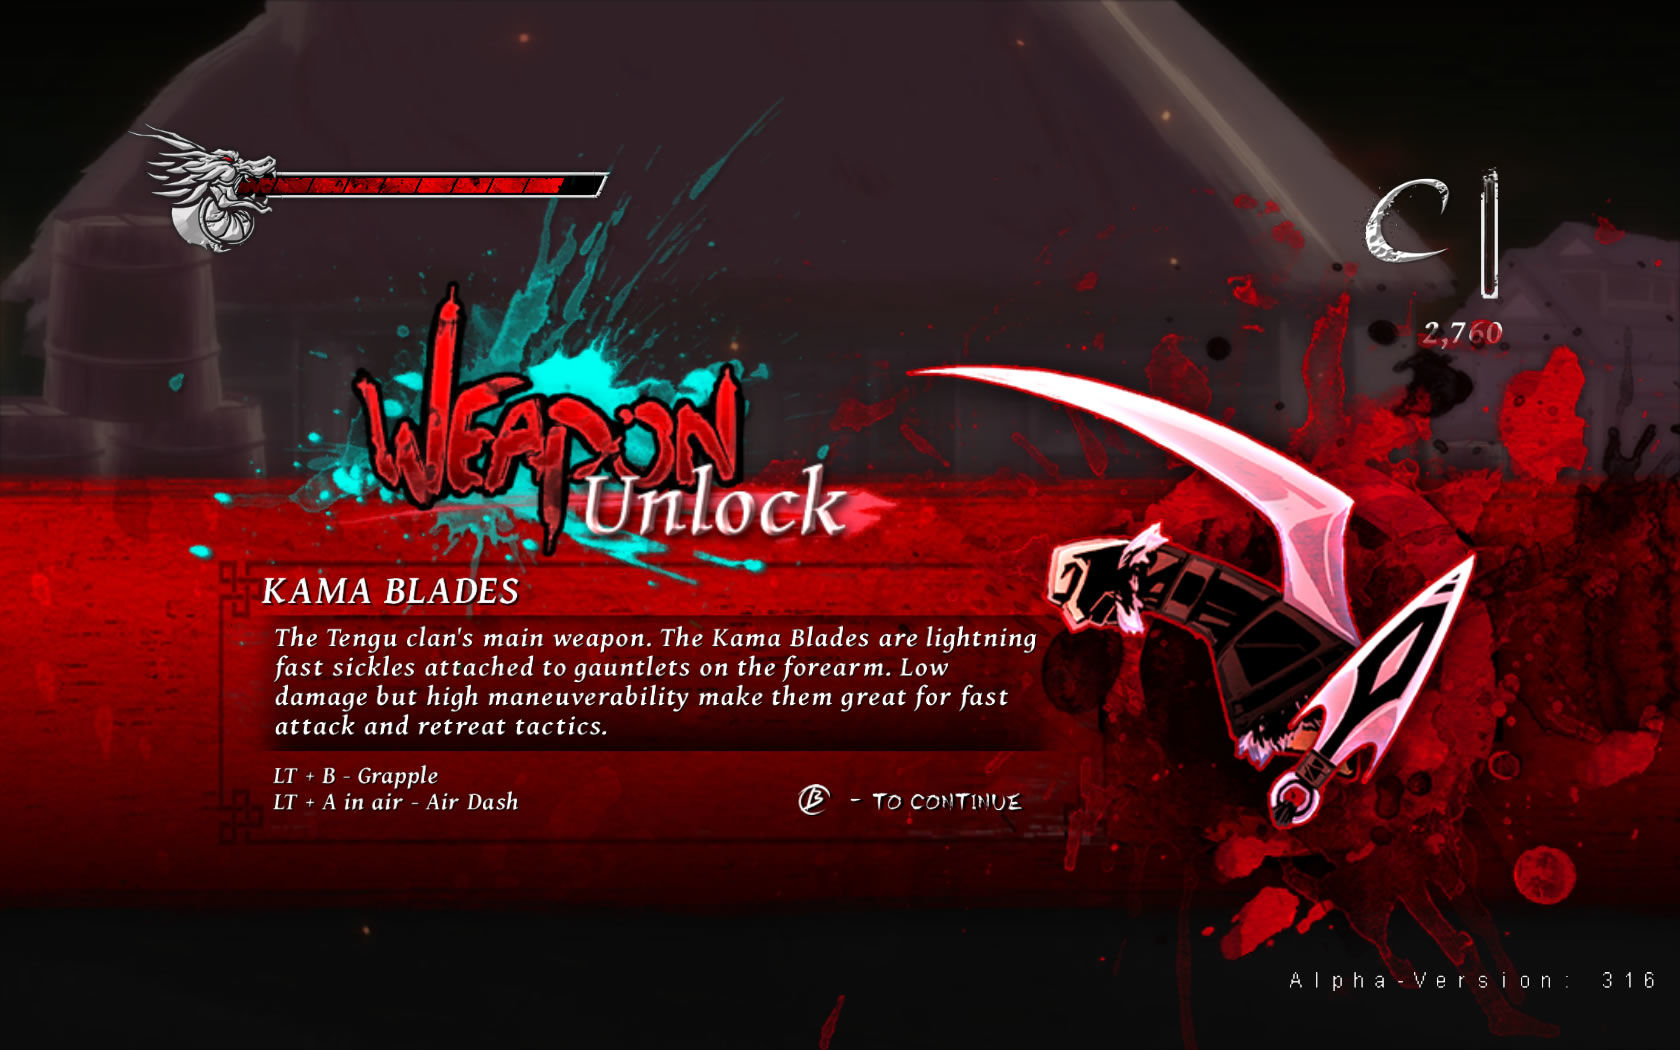 Onikira: Demon Killer Windows Additional weapons are found early on. (Alpha Version 316)